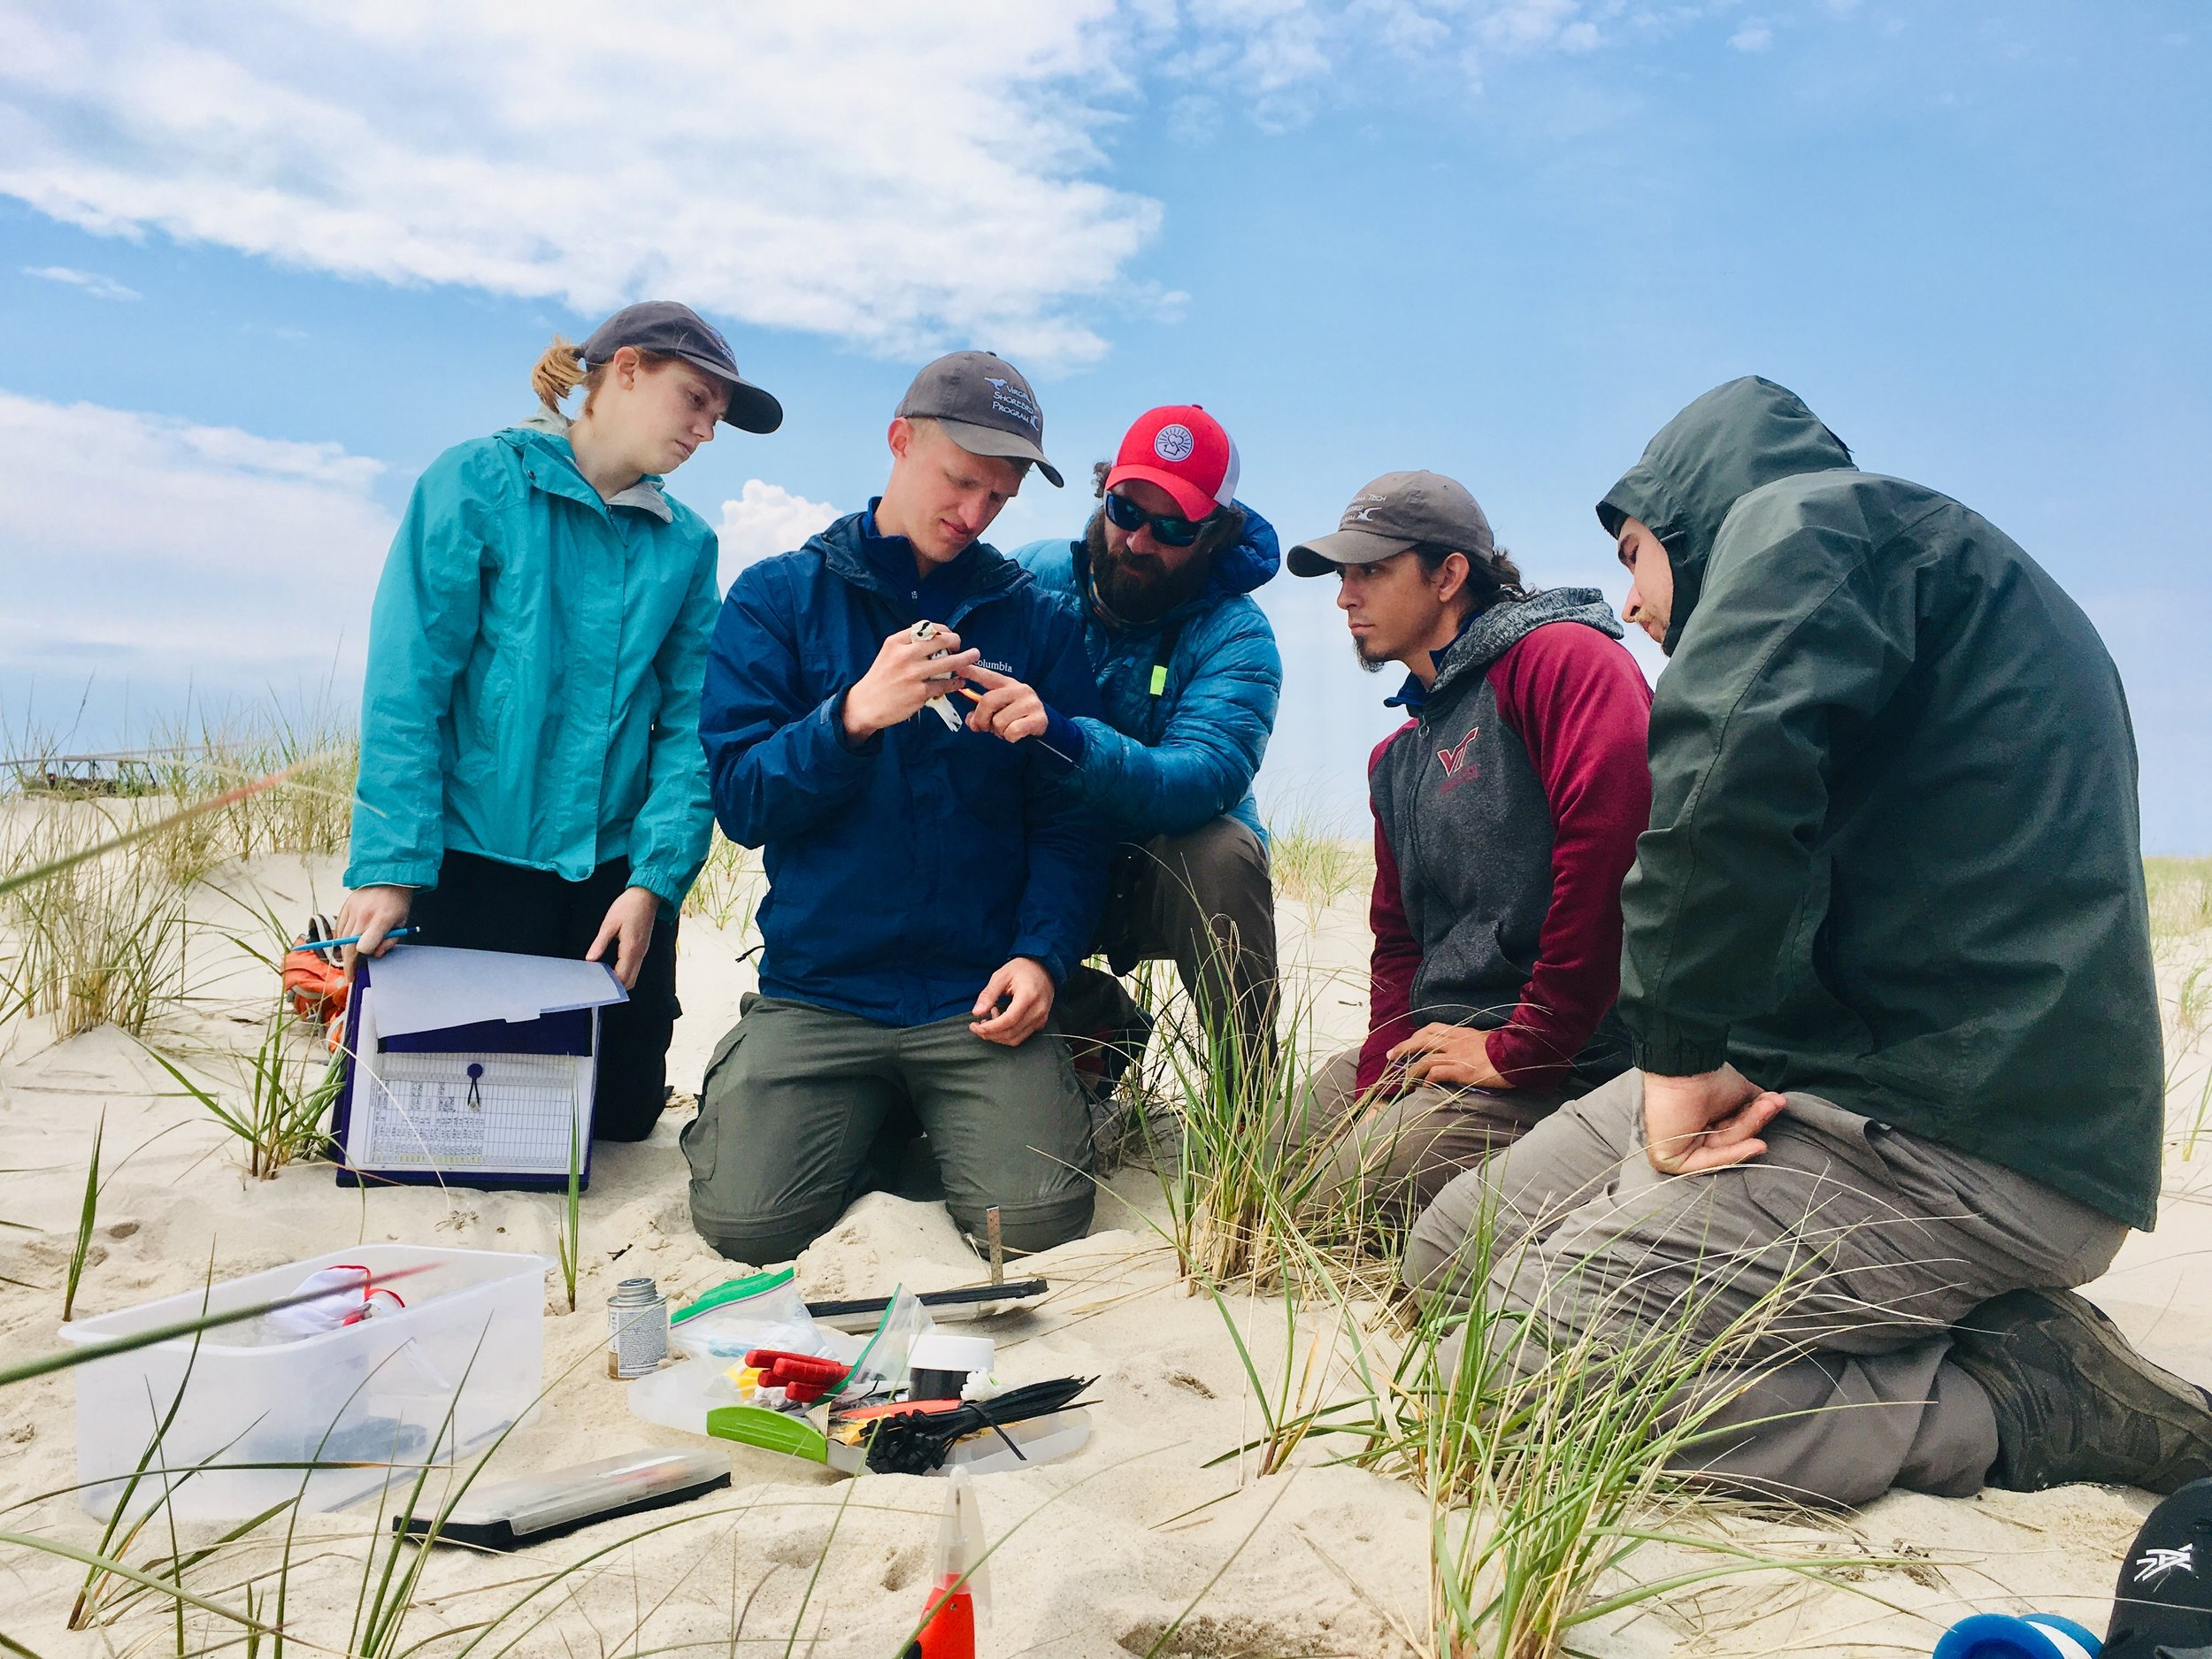 Dan Catlin working with some of our biologists on Fire Island, showing them some of the finer details of measuring birds.